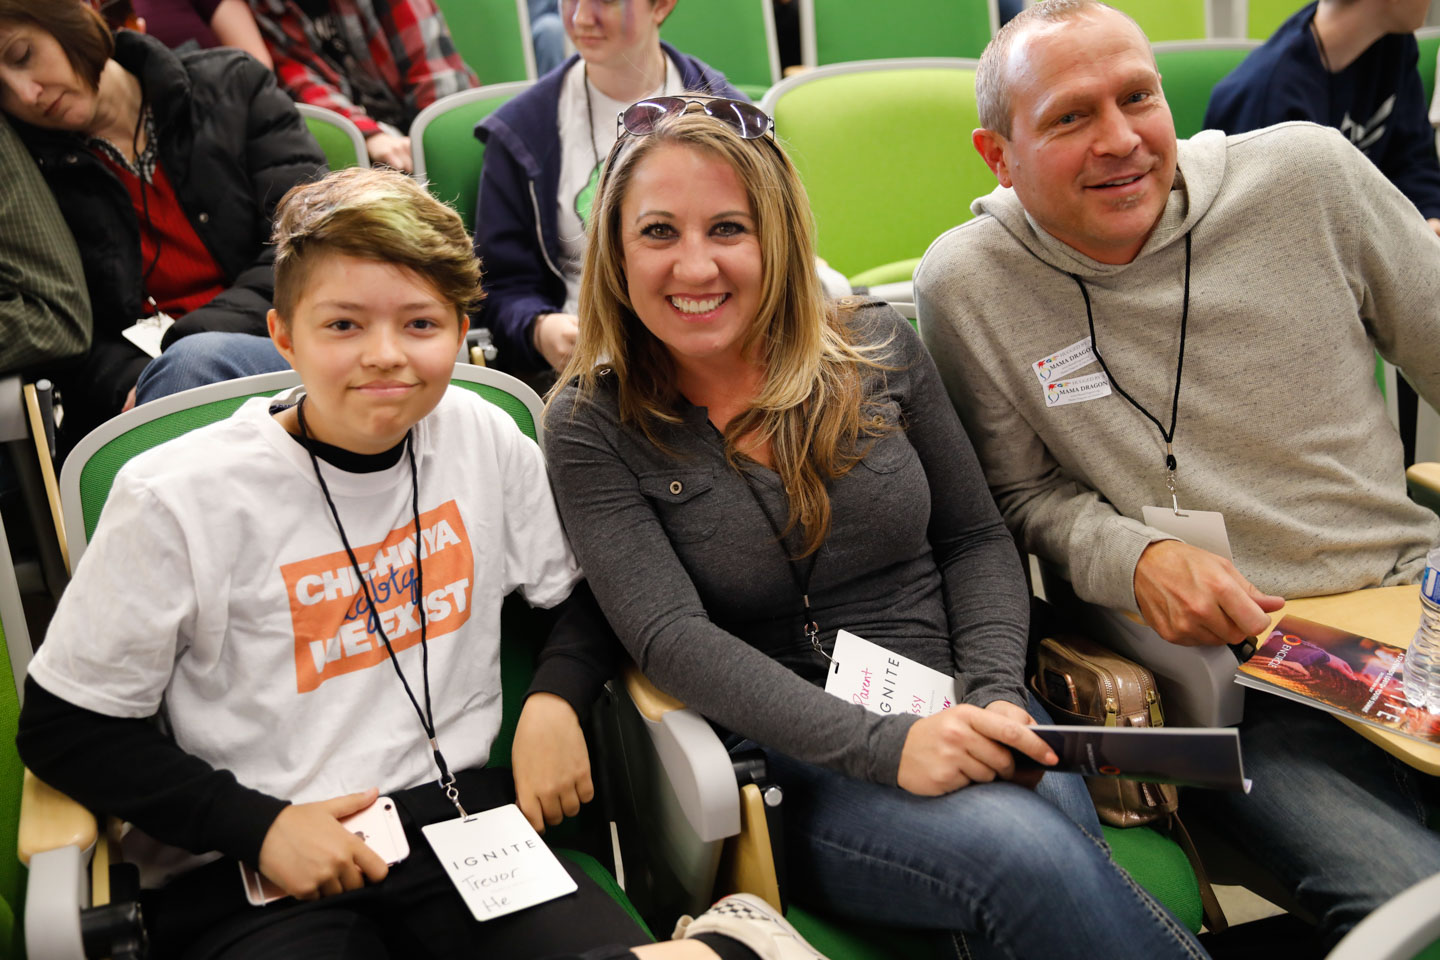 Families attend Ignite